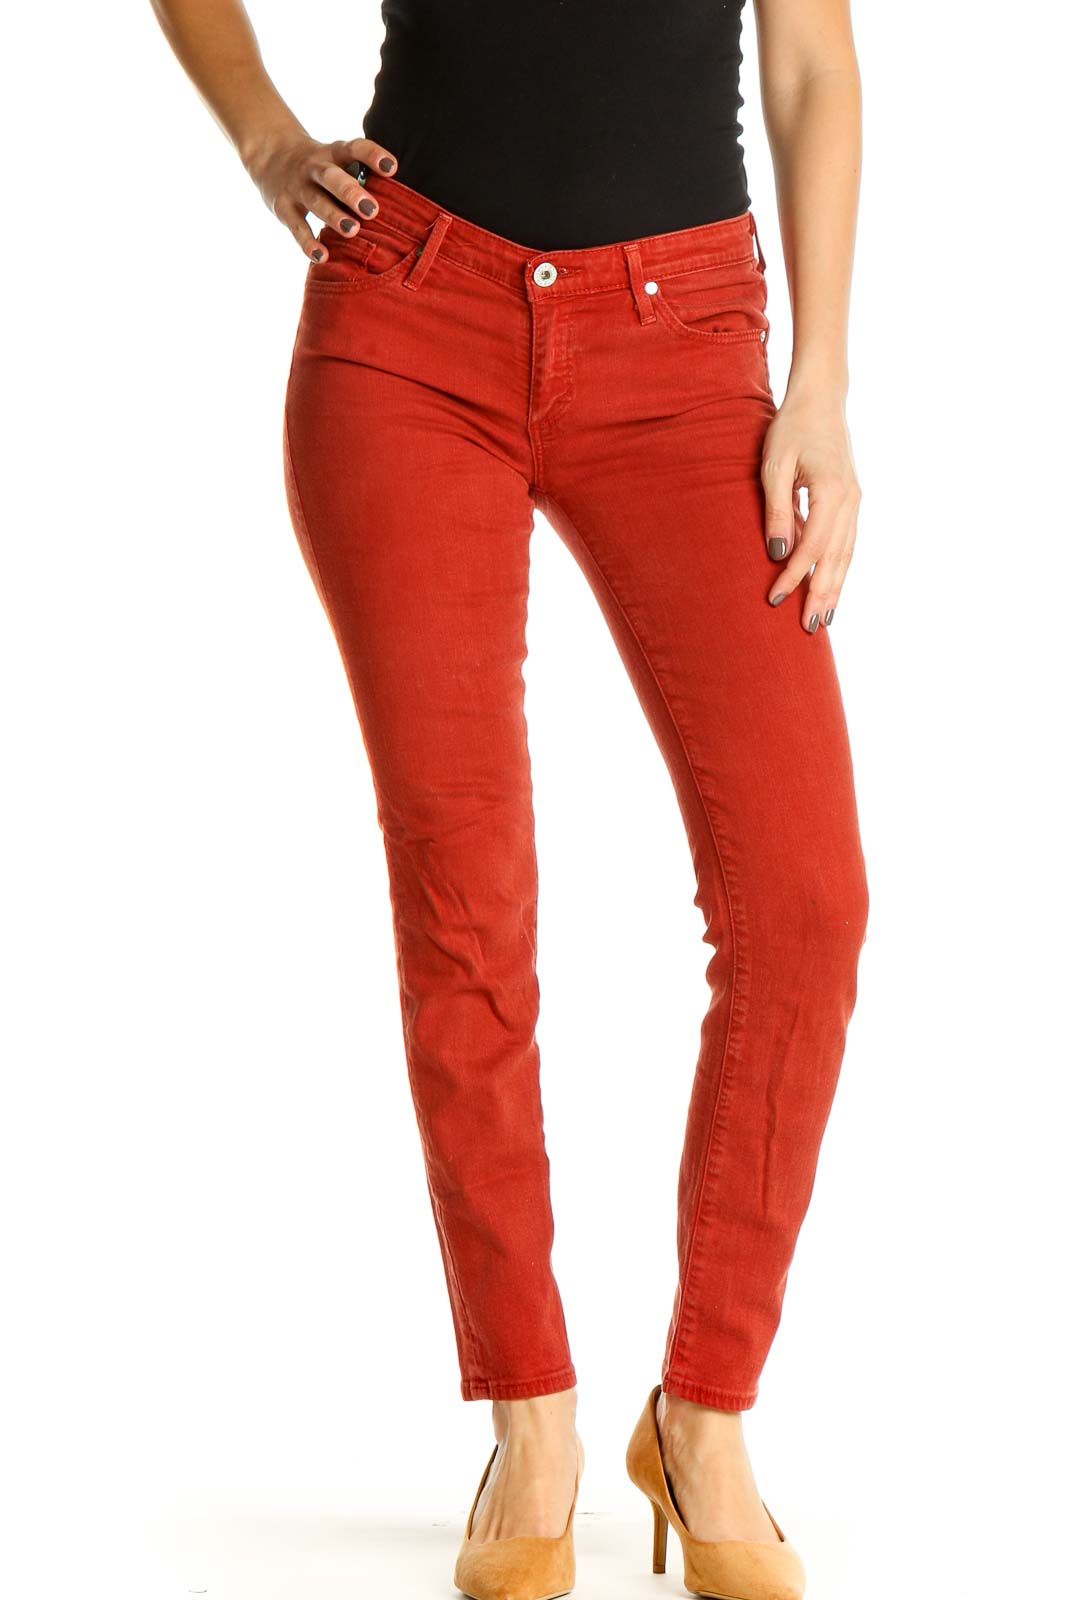 Red Solid Casual Jeans Front